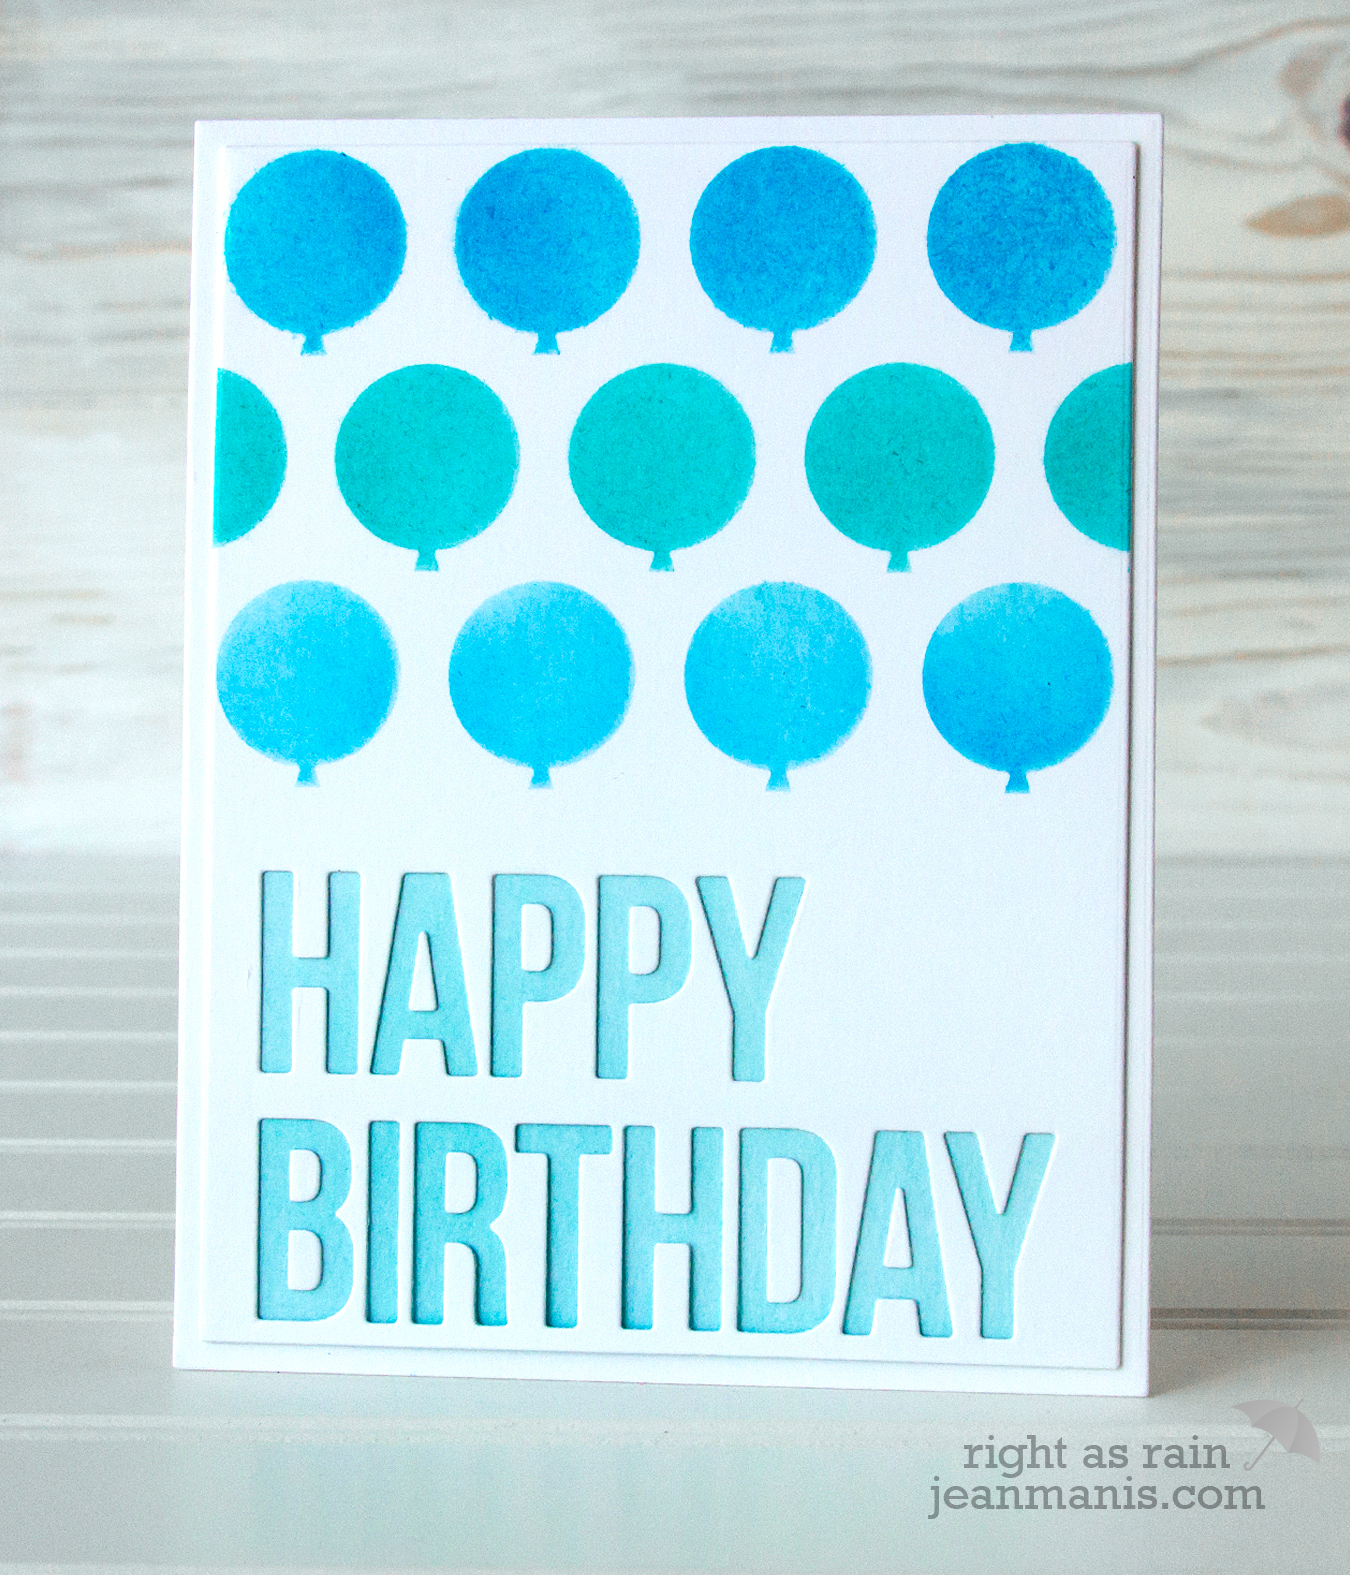 Happy Birthday Card - Echo Park Balloons Stencil